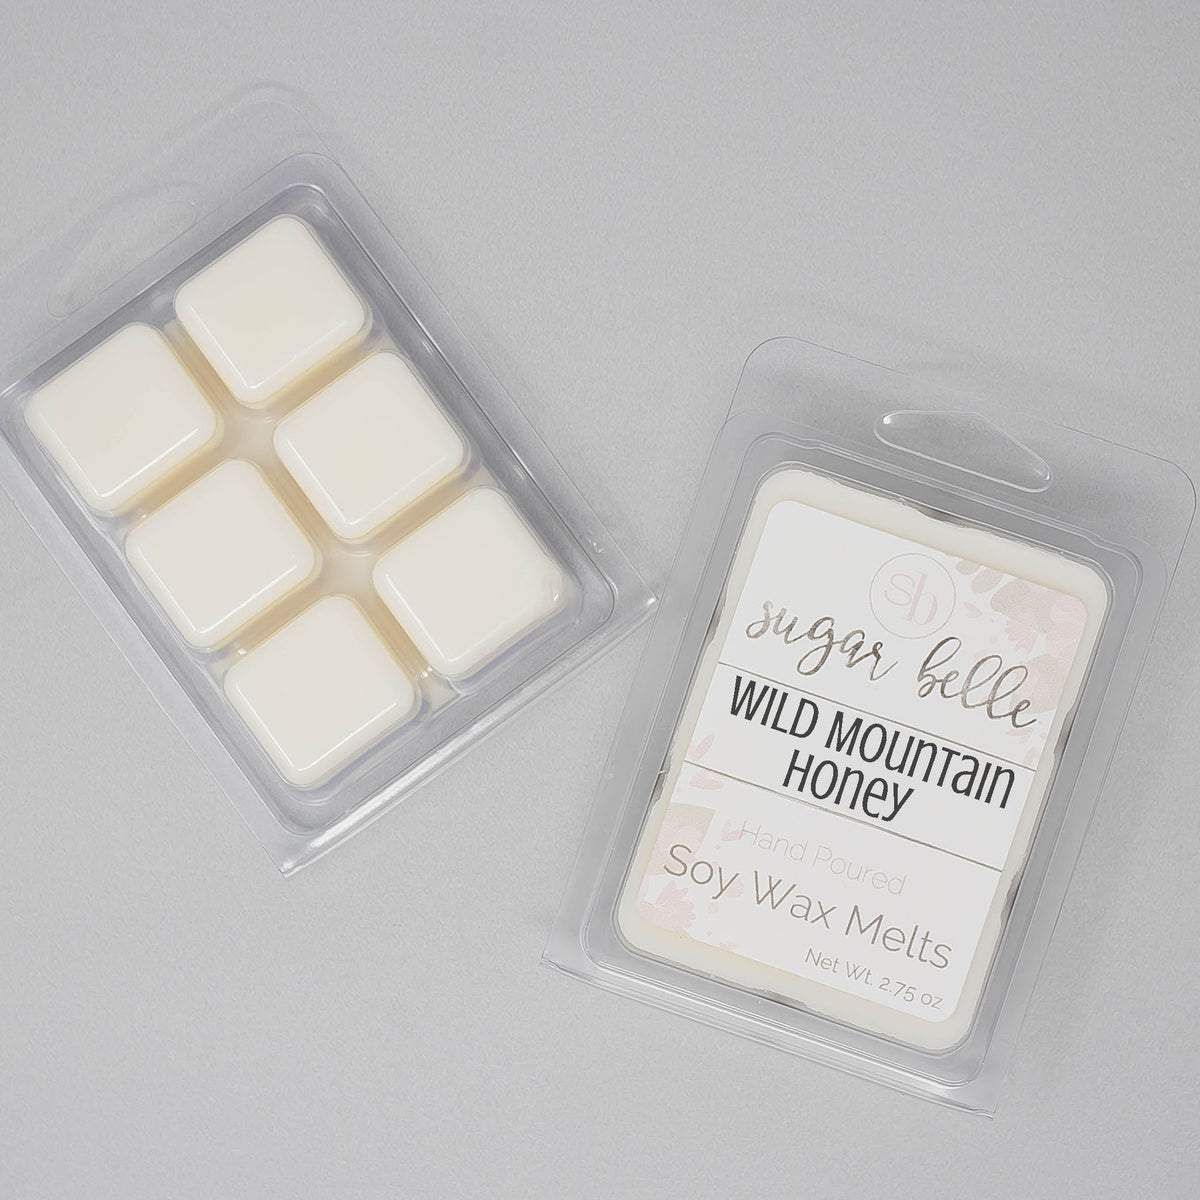 Wild Mountain Honey Scented Soy Wax Melts